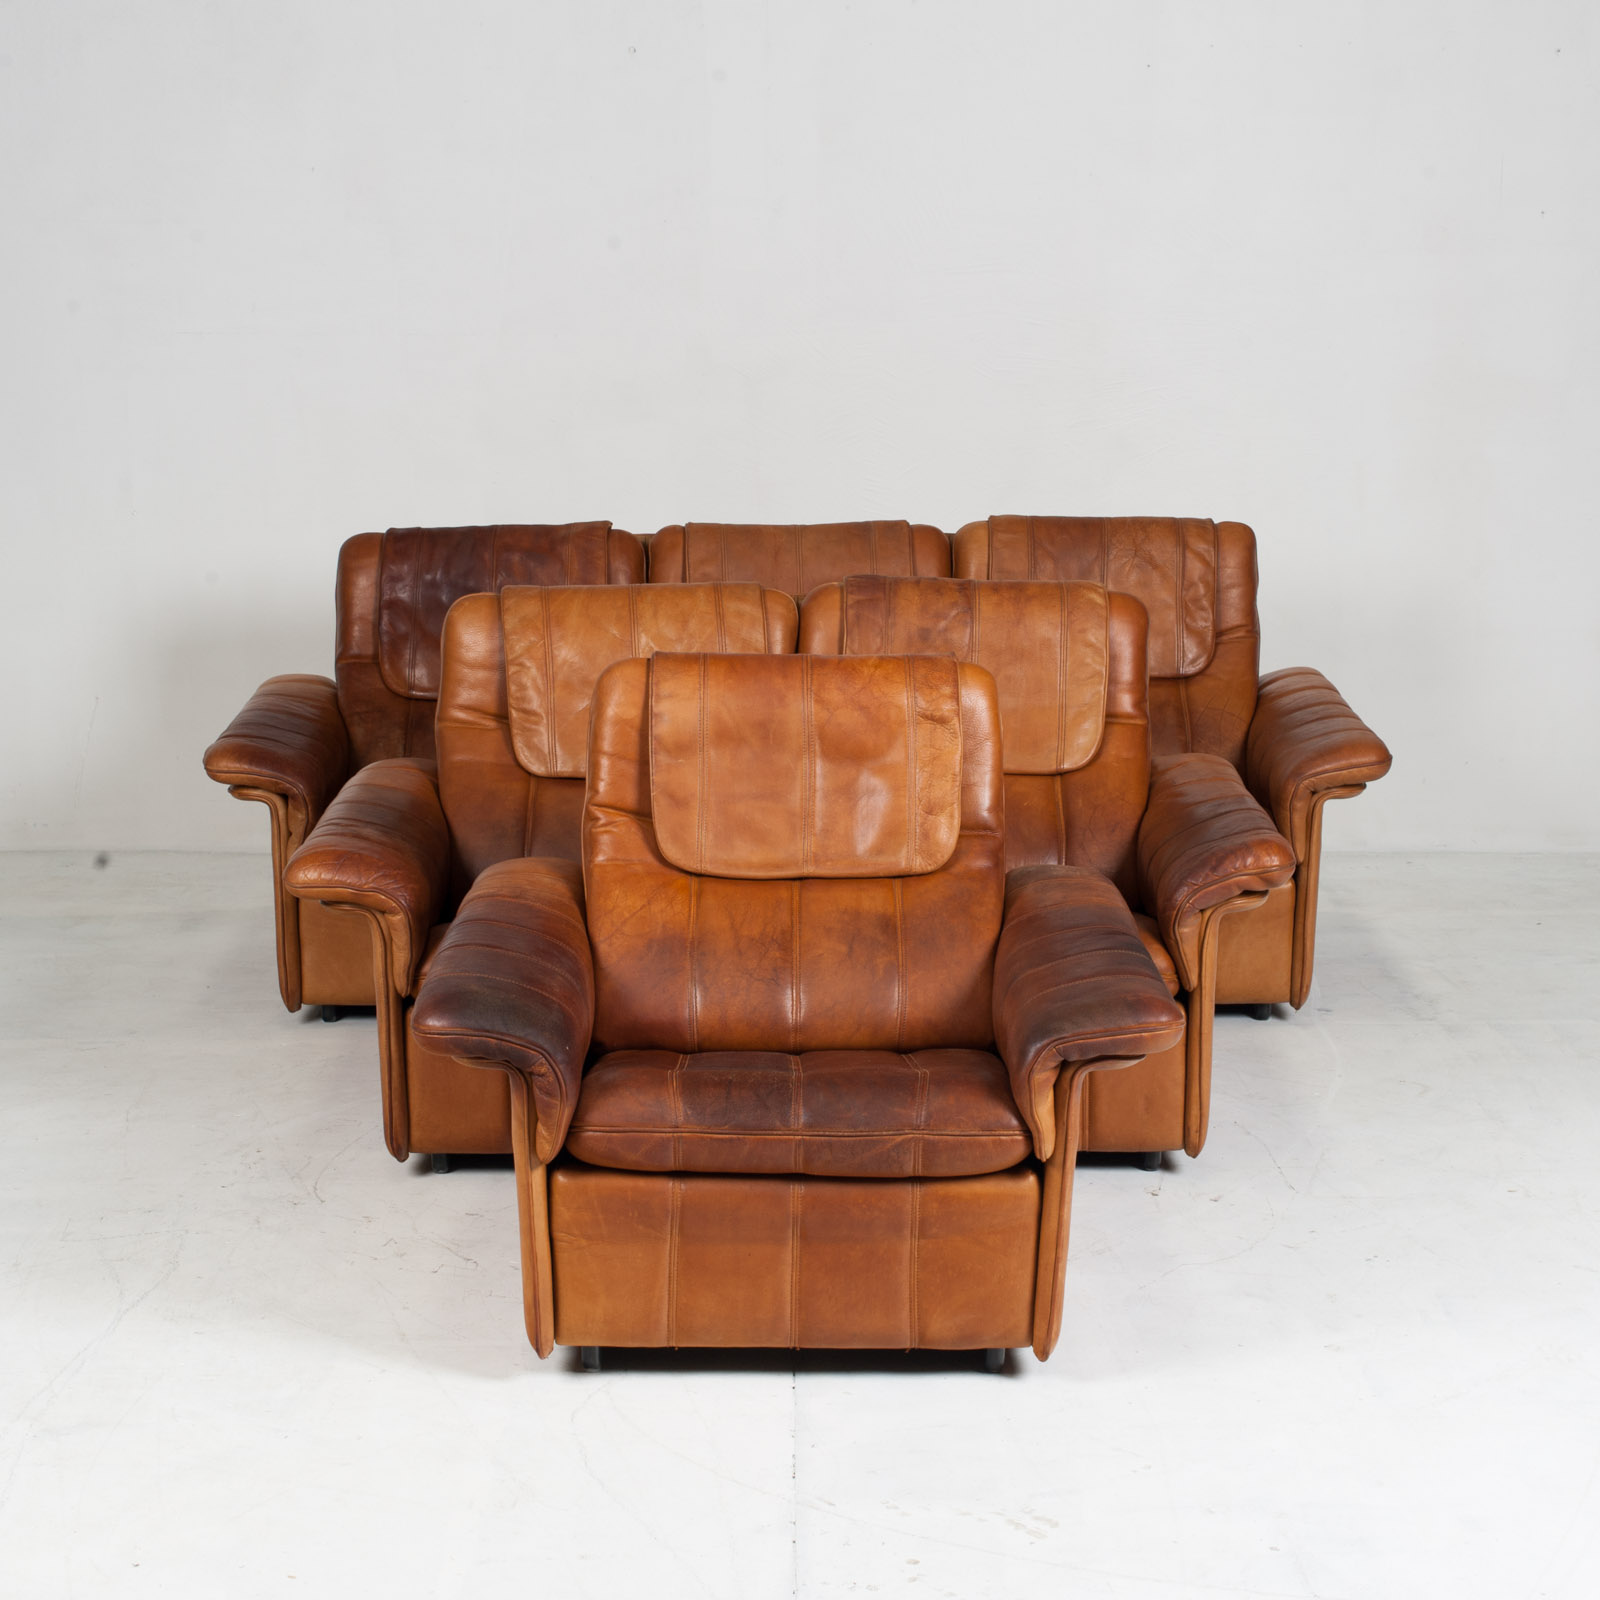 3 Seat Sofa By De Sede In Tan Leather 1970s Switzerland 15